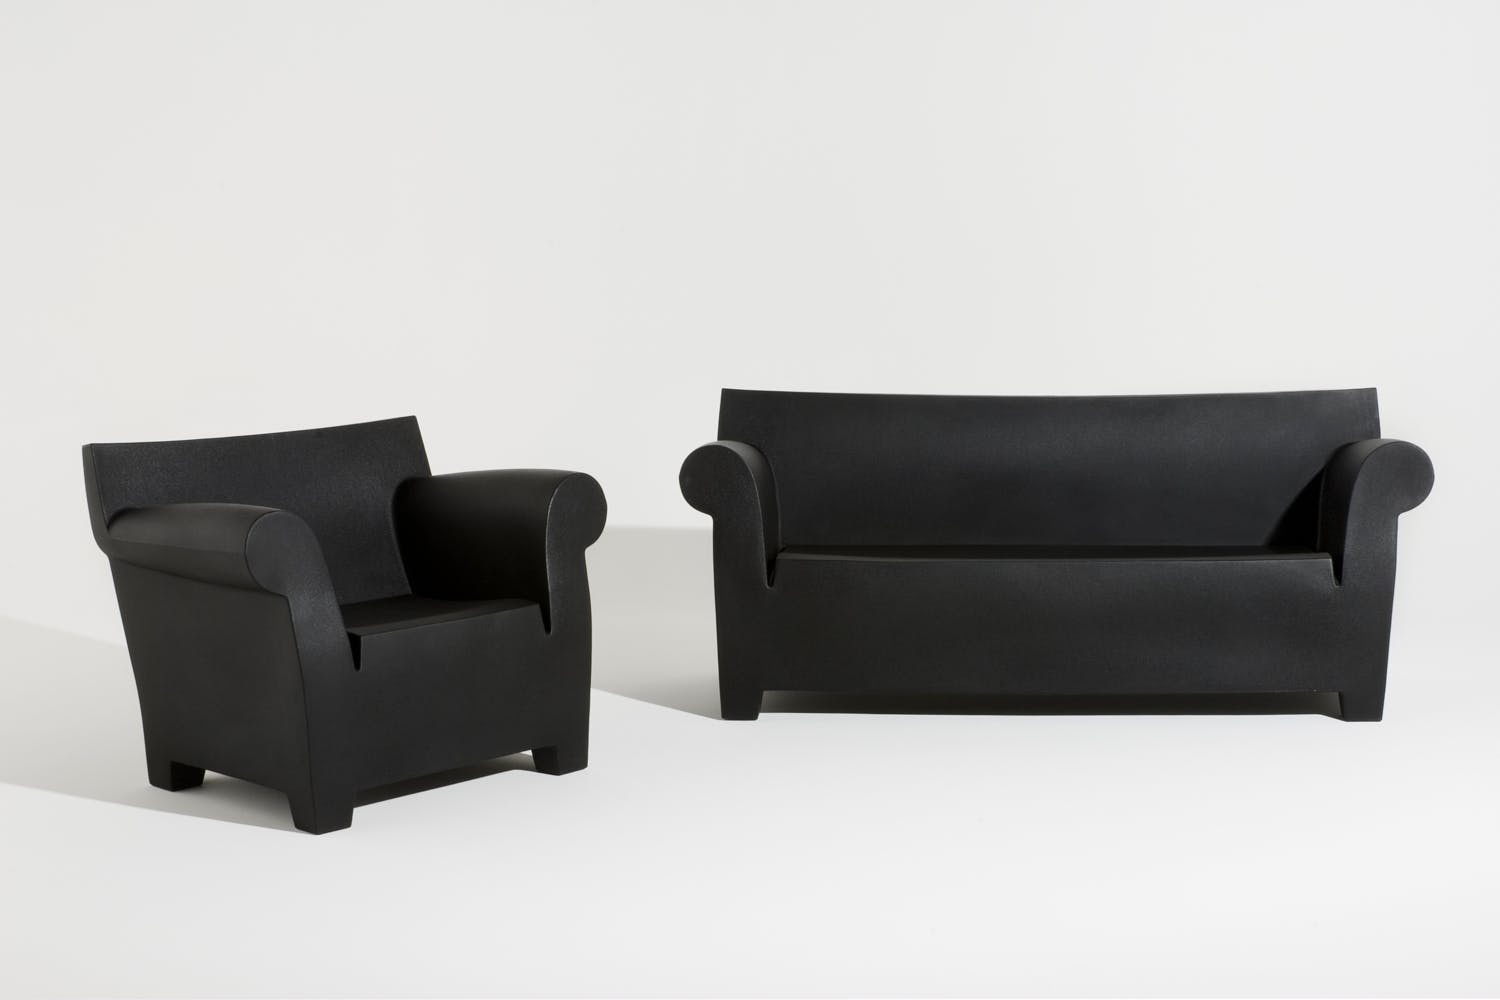 bubble club sofa armchair by philippe starck for kartell. Black Bedroom Furniture Sets. Home Design Ideas